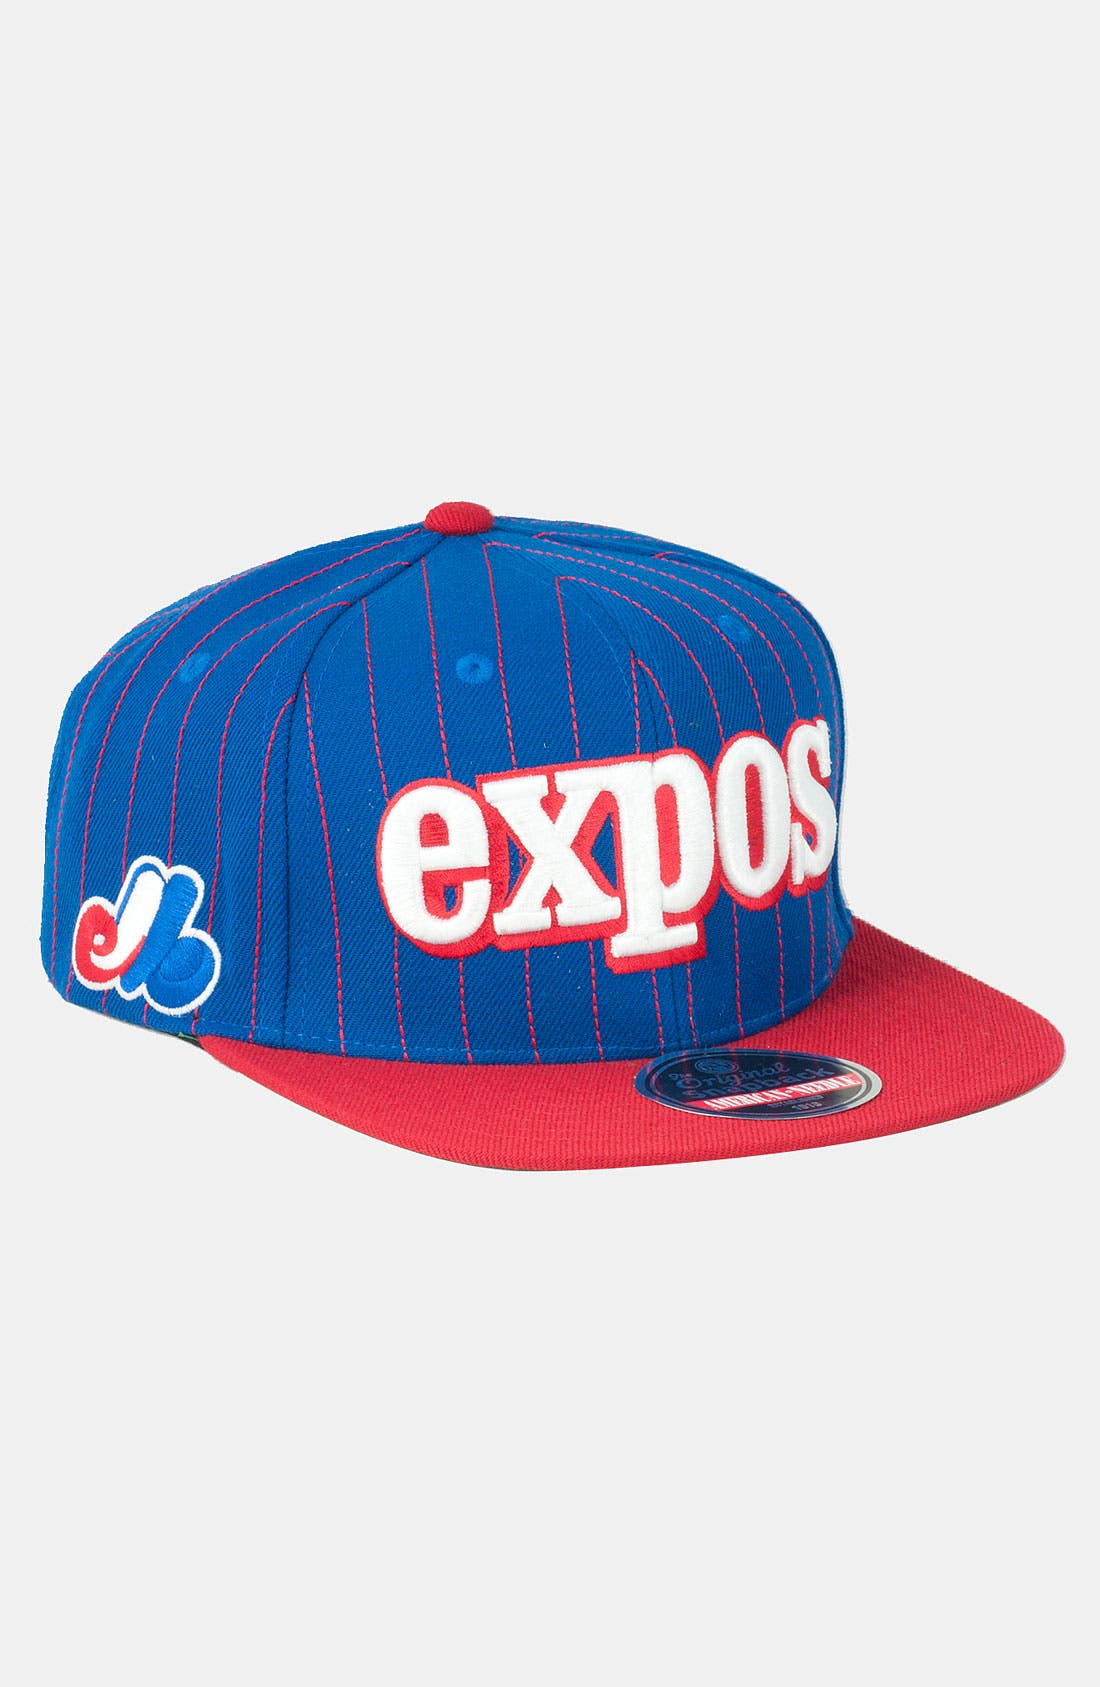 Alternate Image 1 Selected - American Needle 'Expos' Snapback Baseball Cap